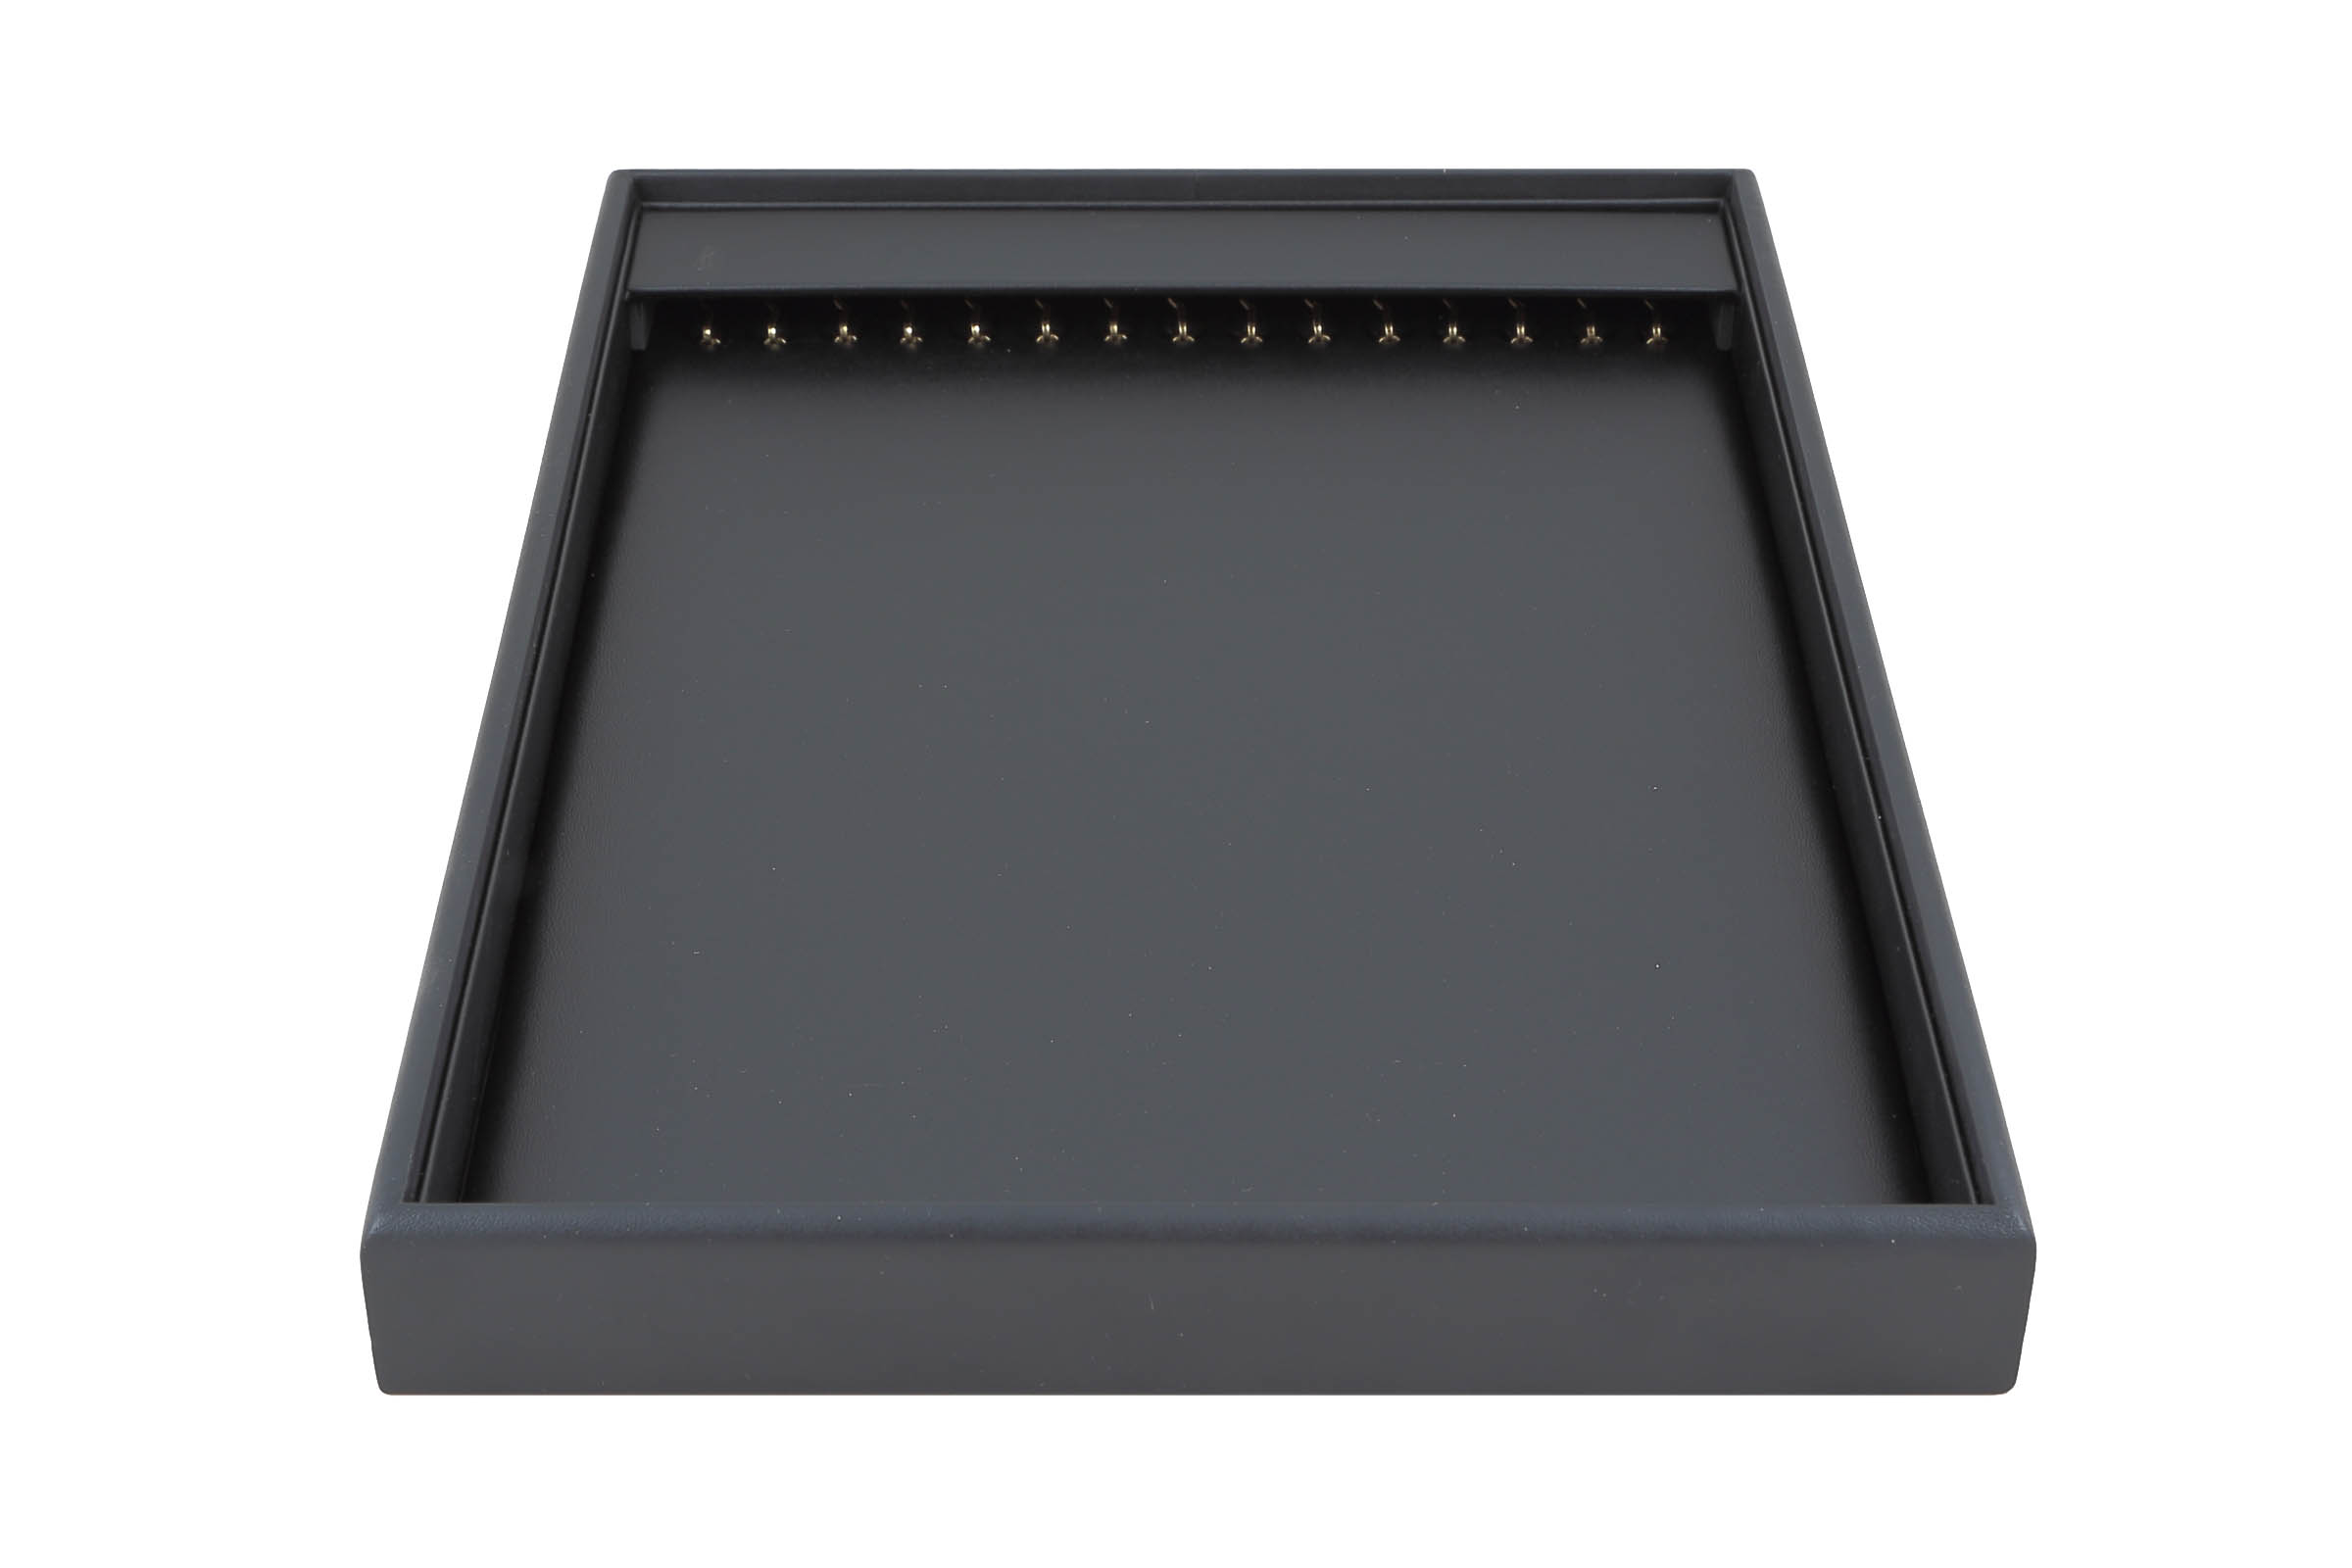 1 x Black Premium Soft Padded Leatherette Necklace or Bracelet Display Tray. Stackable. Dim 315(w) x 225(d) x 30mm(h).